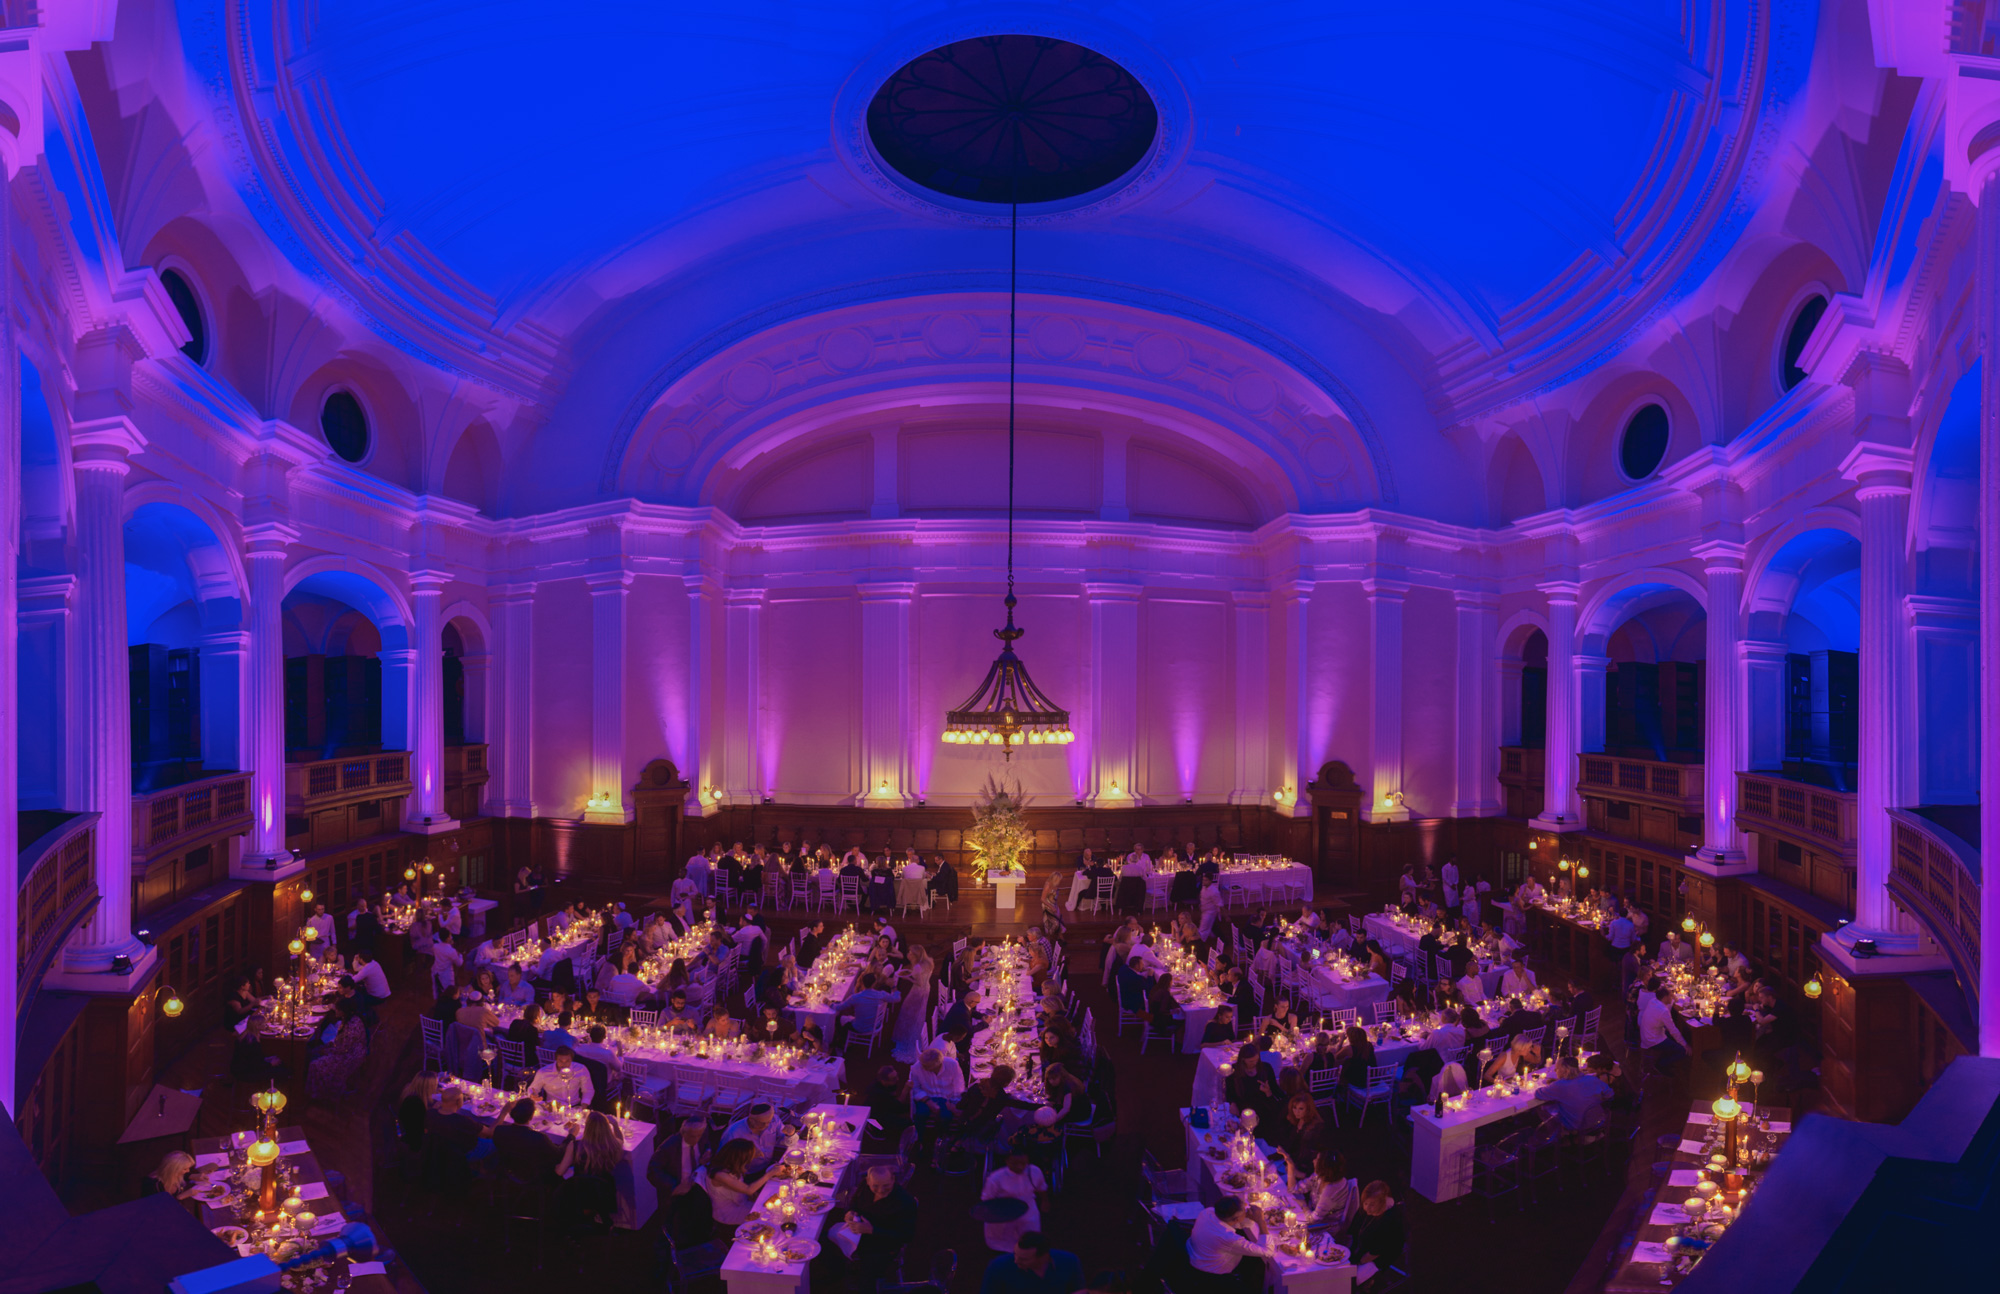 Calli_&_Storm's_Shabbat_Centre_For_The_Book_March_2019_@johnhenryweddingphoto_Low_Resolution_Web-179.JPG